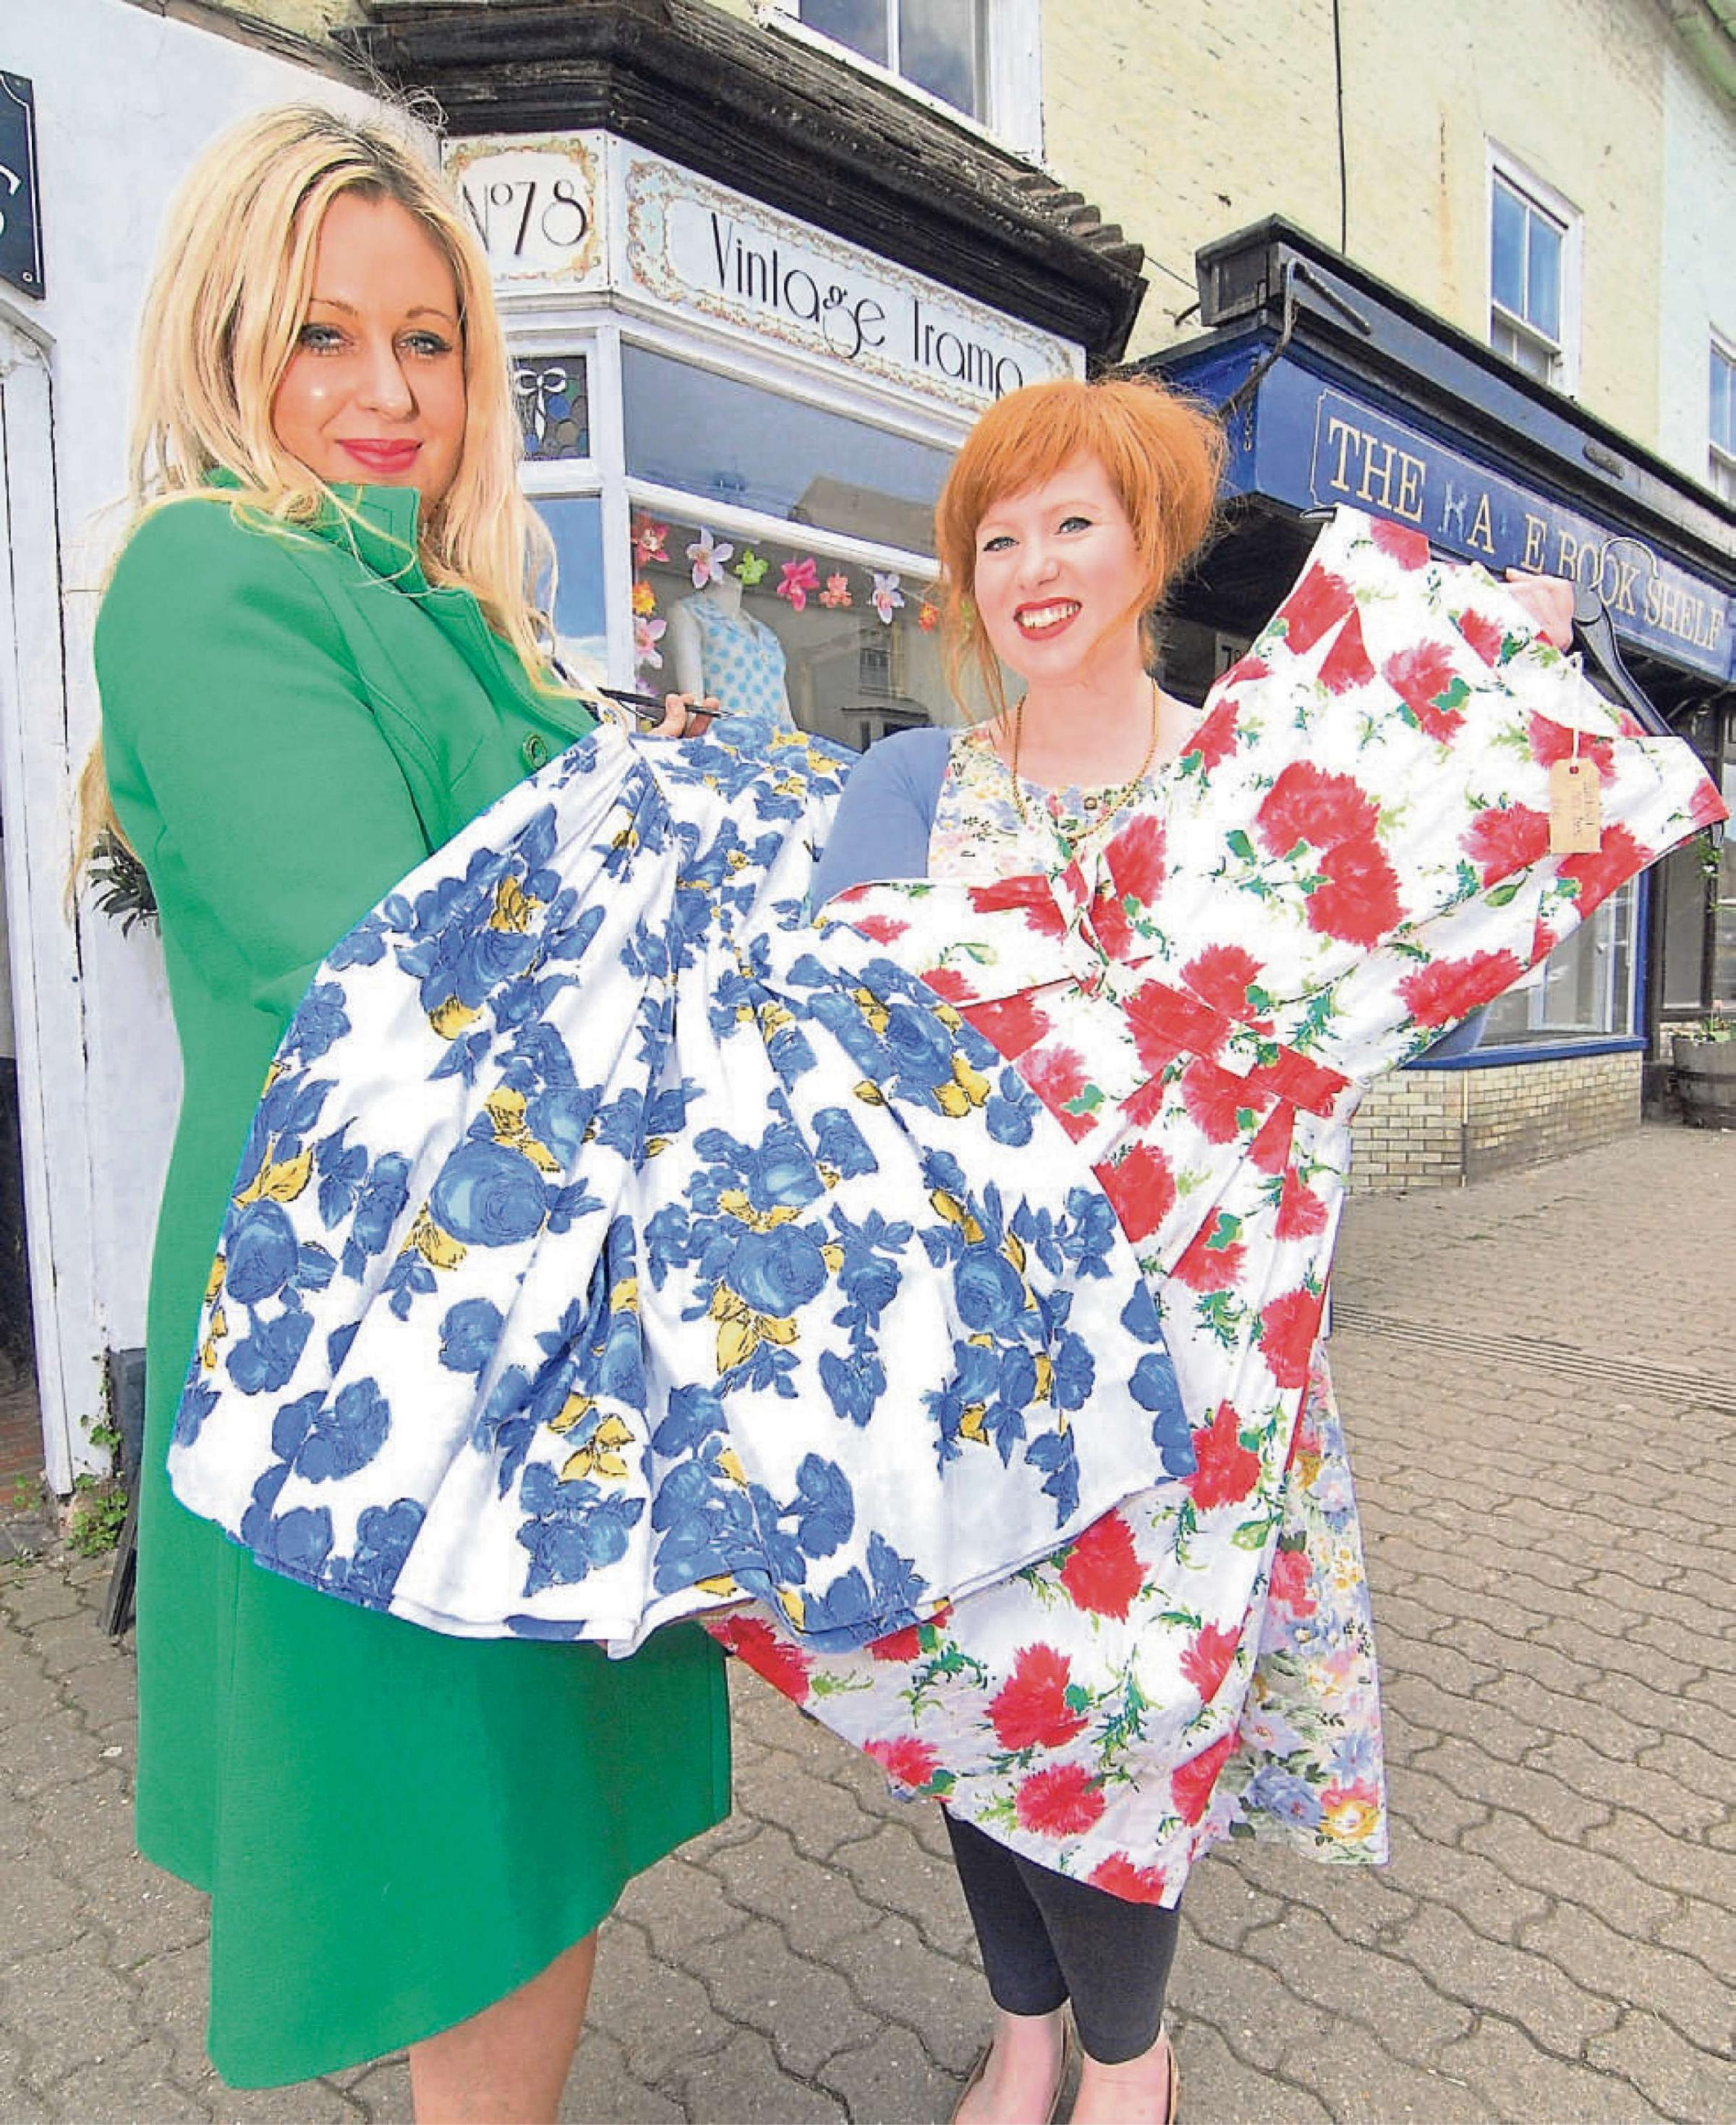 (l-r) Vintage Tramp owner Kelli Warr with shop manager Sophie Davies. Picture by Nick Toogood.